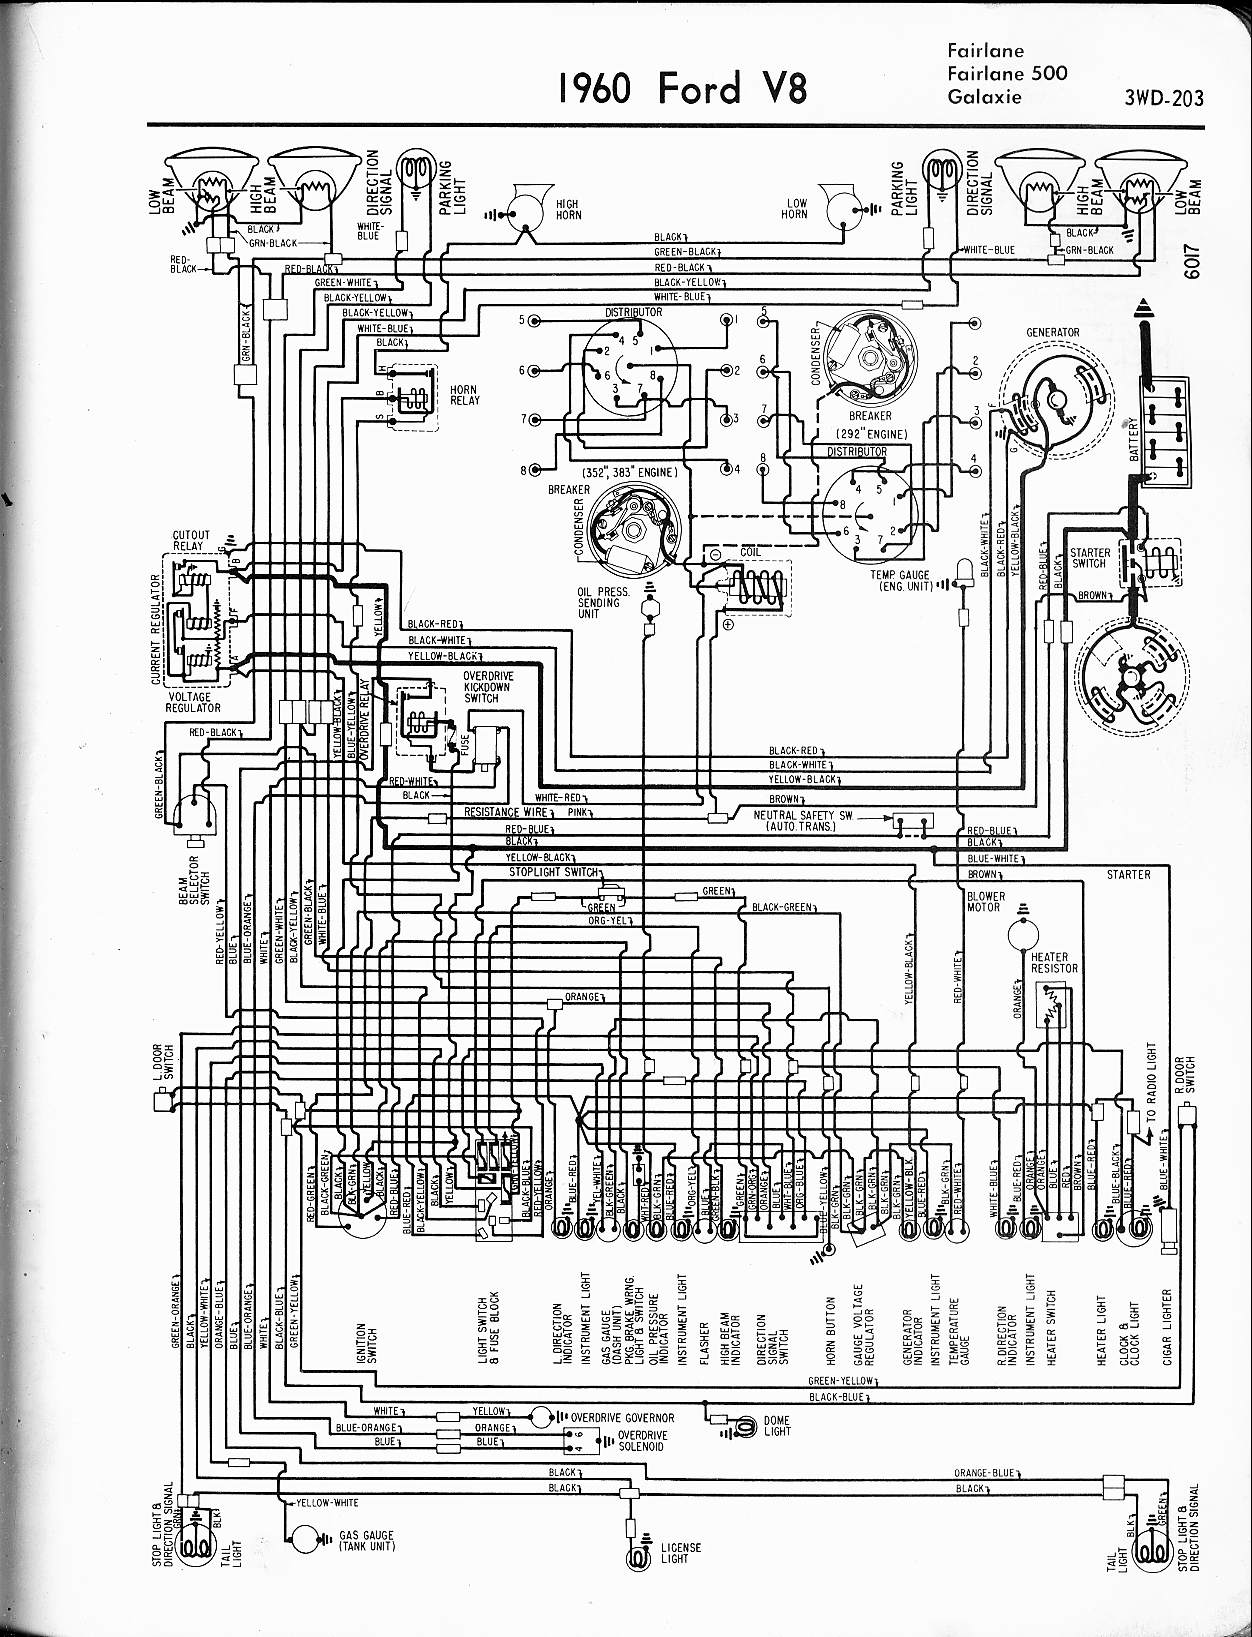 57 65 ford wiring diagrams  1960 v8 fairlane, 500, galaxie